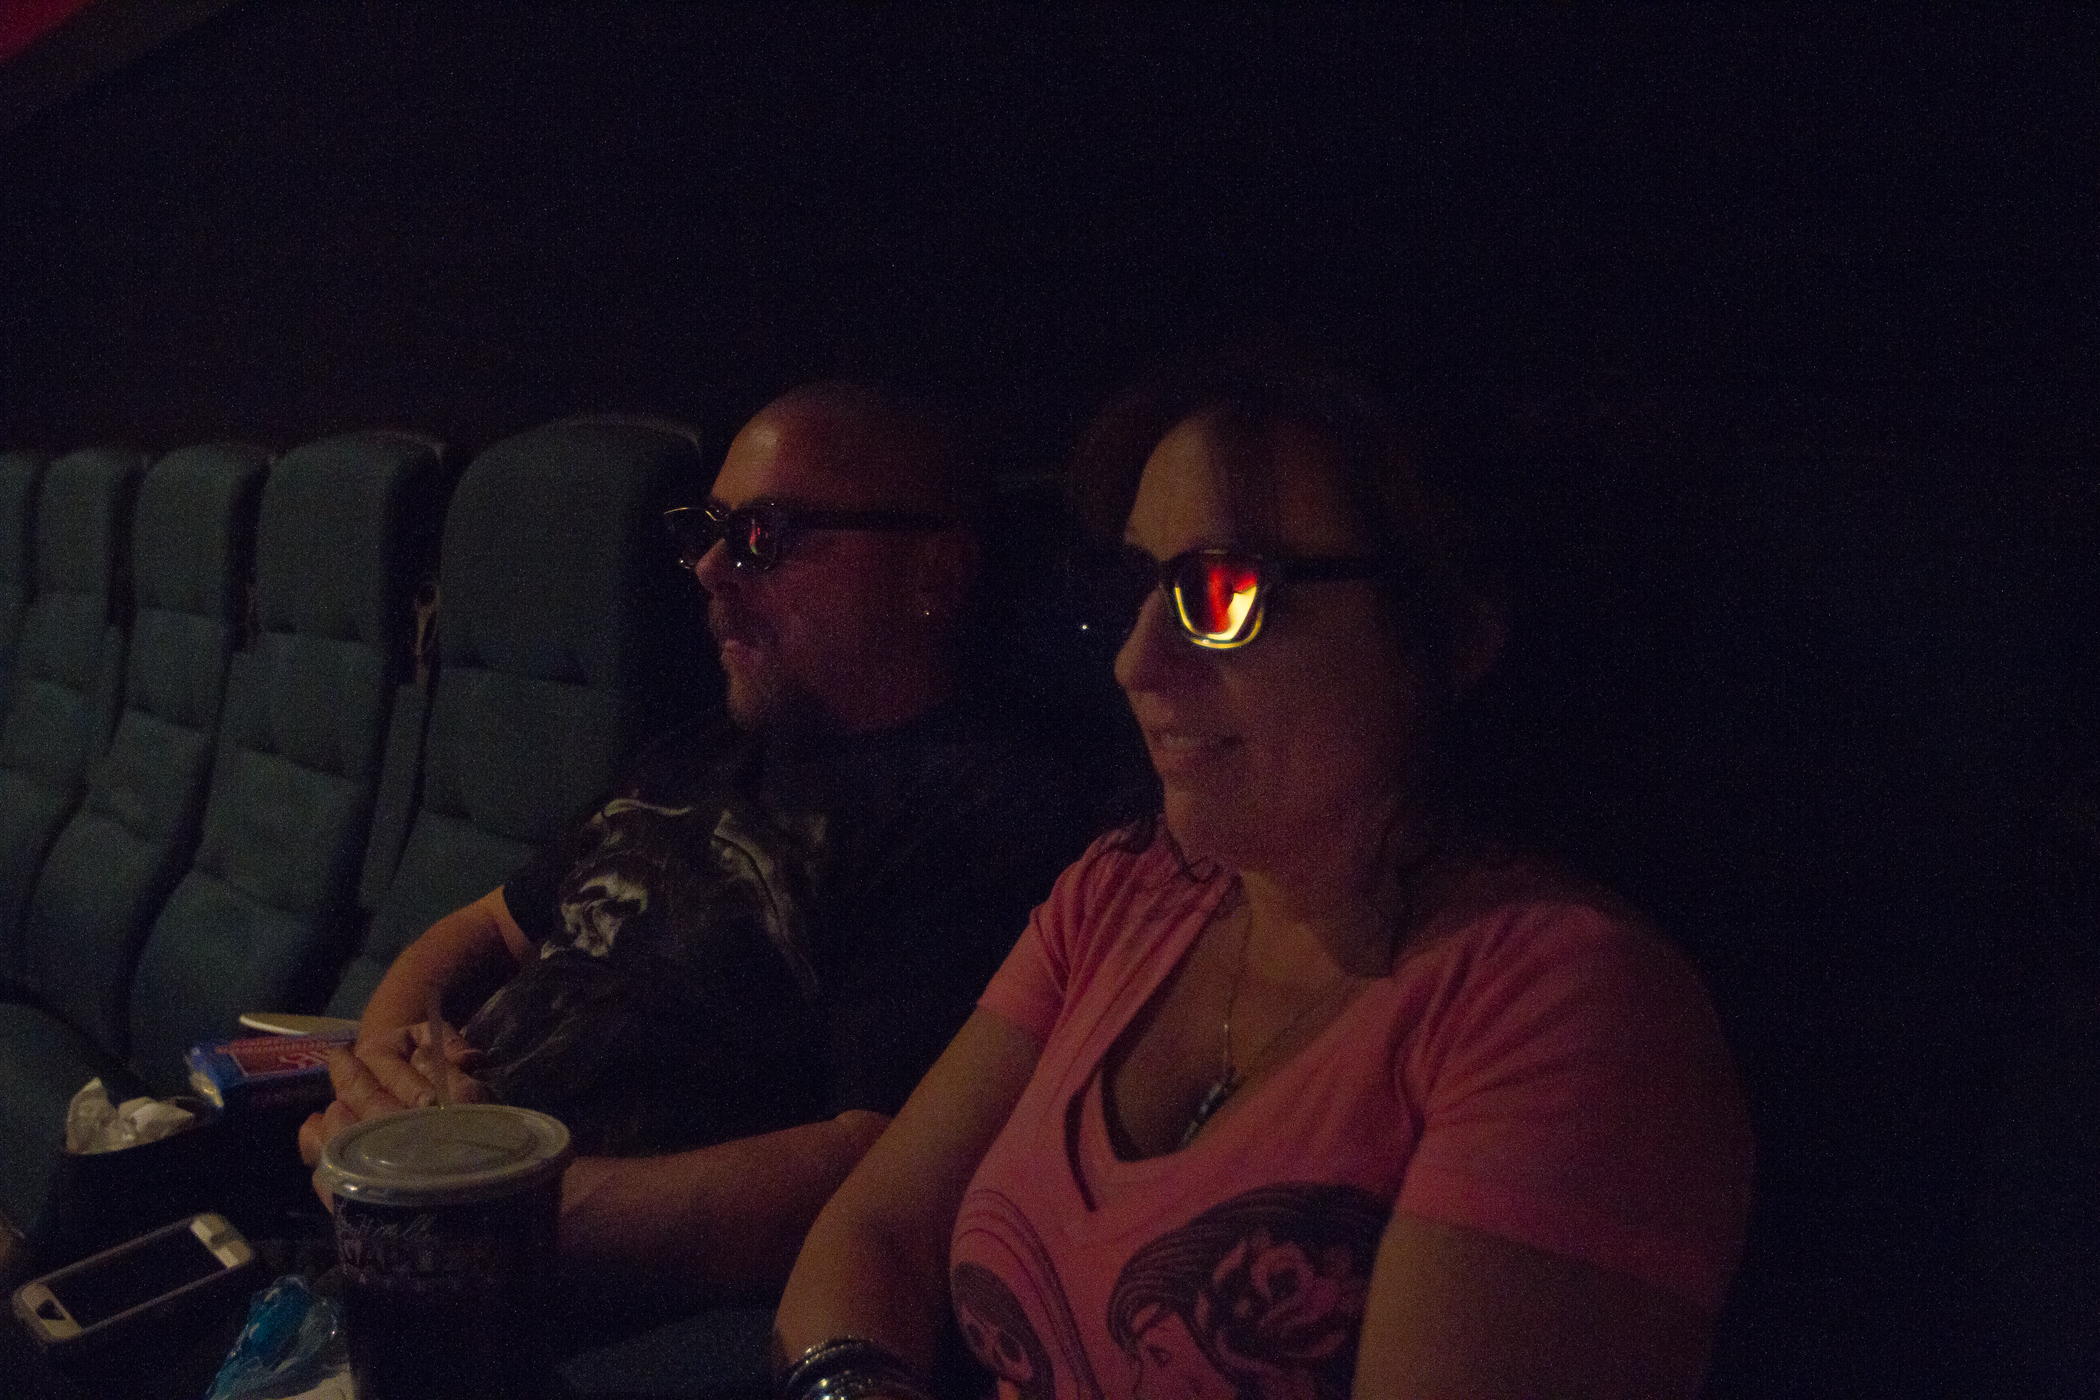 4d movie theaters to stimulate dwindling 3d market the daily universe